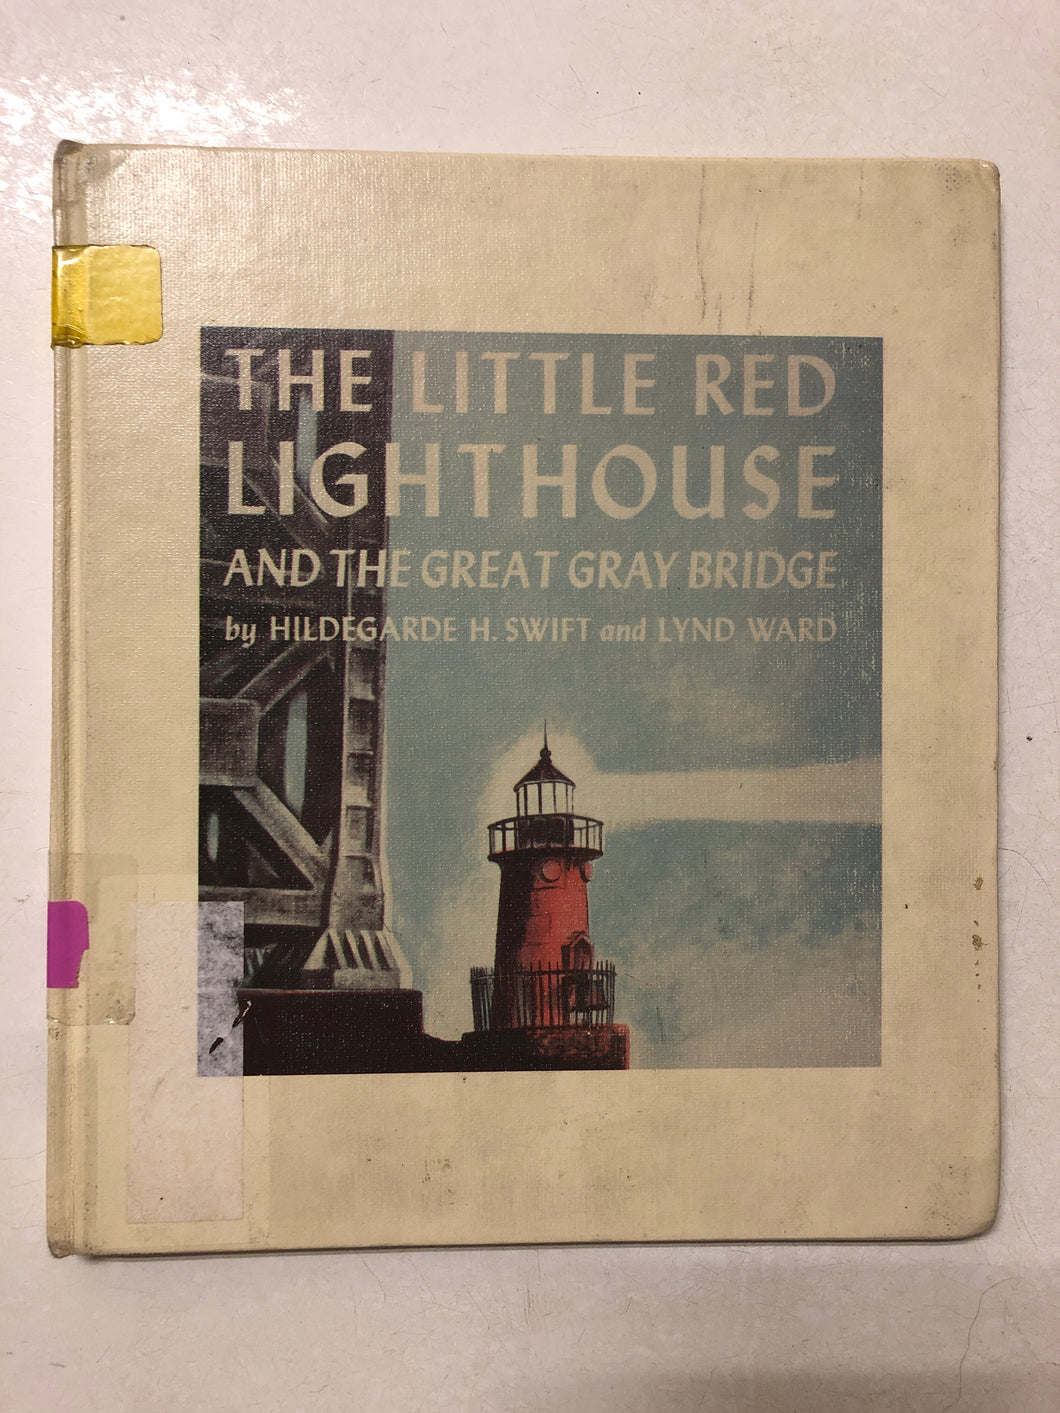 The Little Red Lighthouse and the Great Gray Bridge - Slick Cat Books